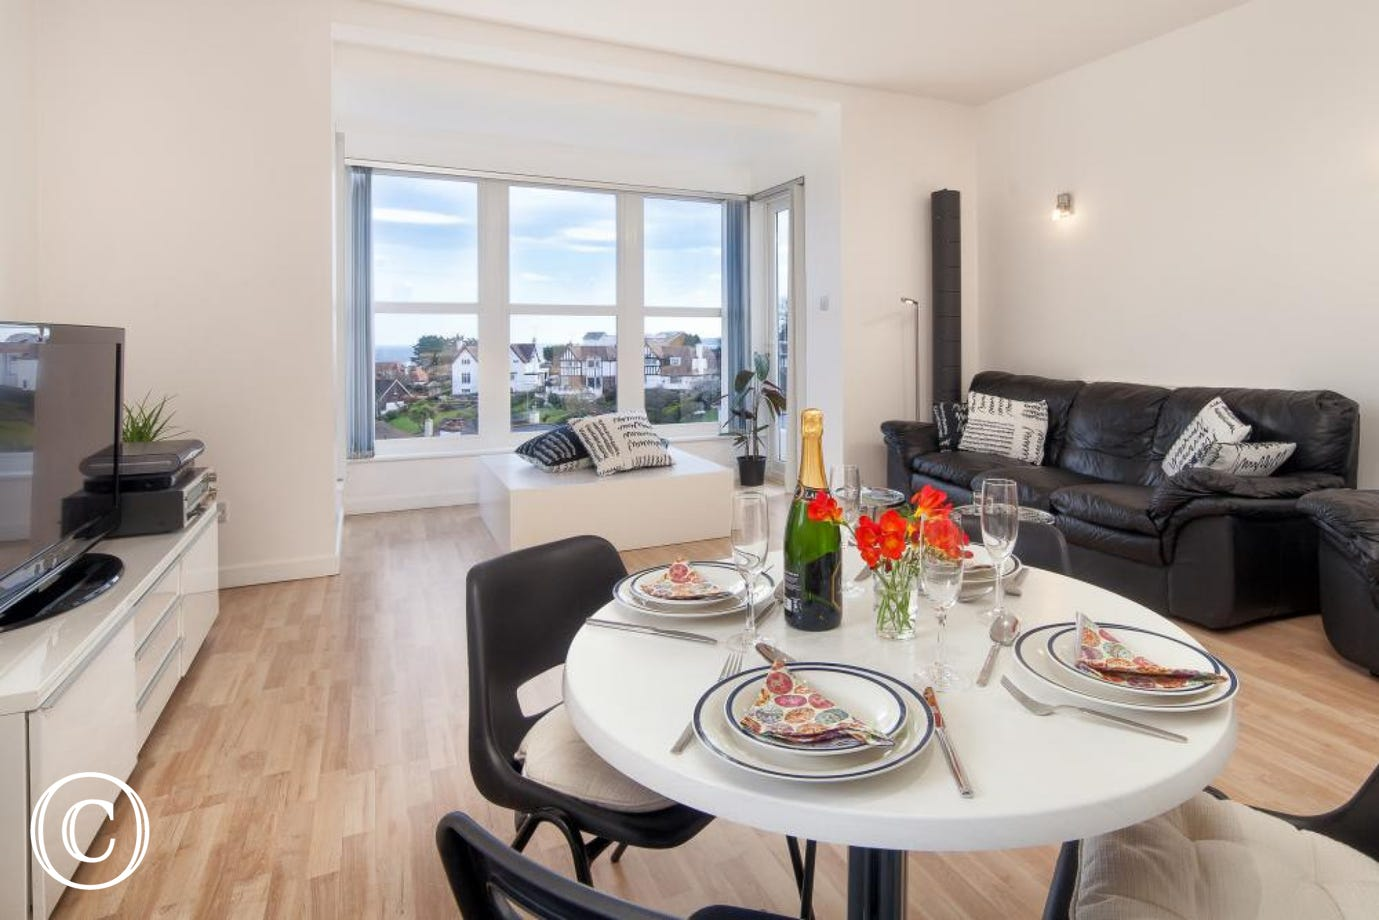 Enjoy Amazing Views throughout Ben's Place, a Modern, Spacious Self-Catering Holiday Home Accommodation Apartment in Torquay, Devon